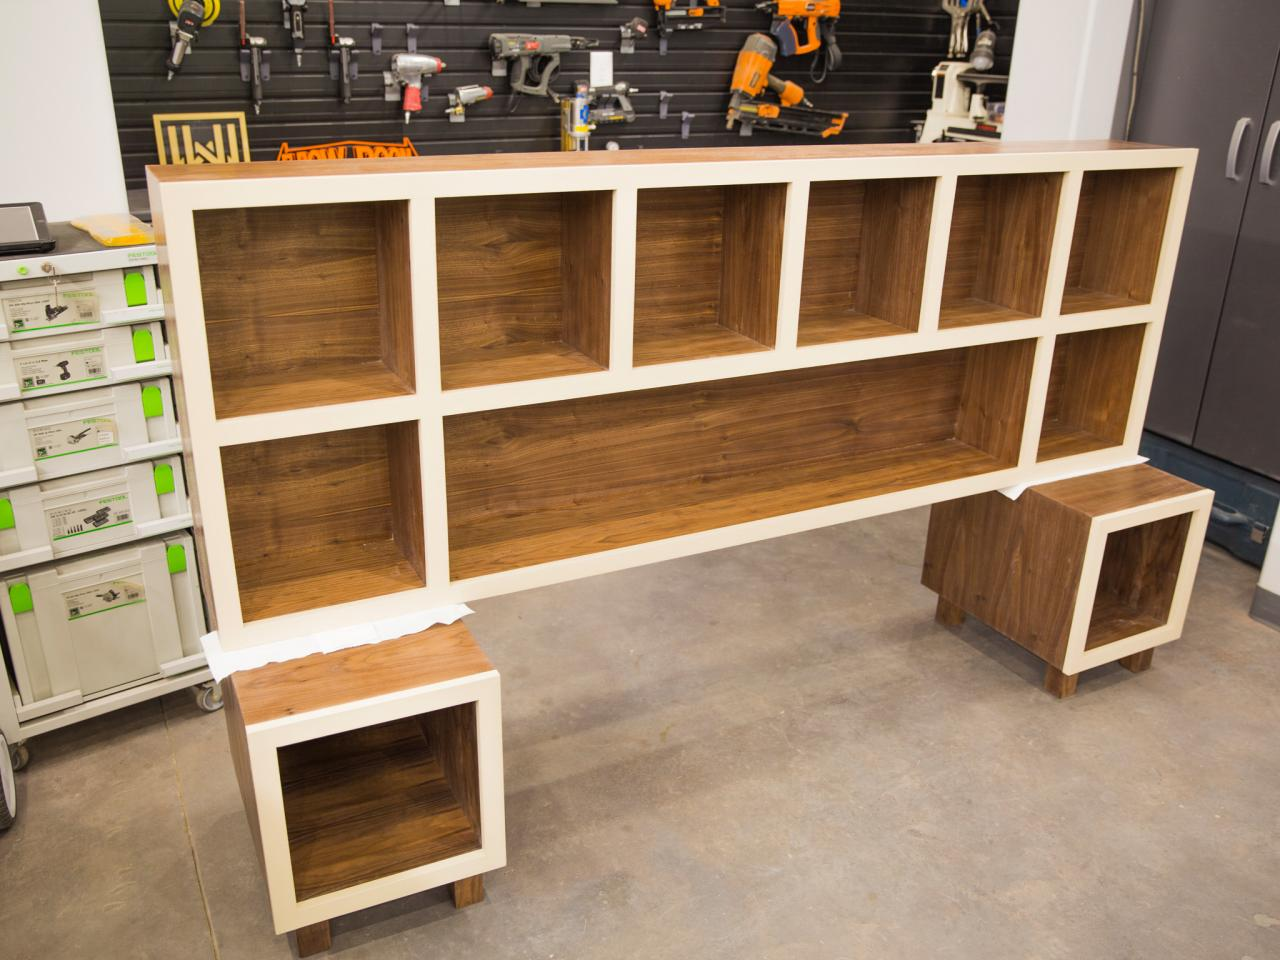 How to Make a Headboard With Storage   HGTV Assemble Headboard